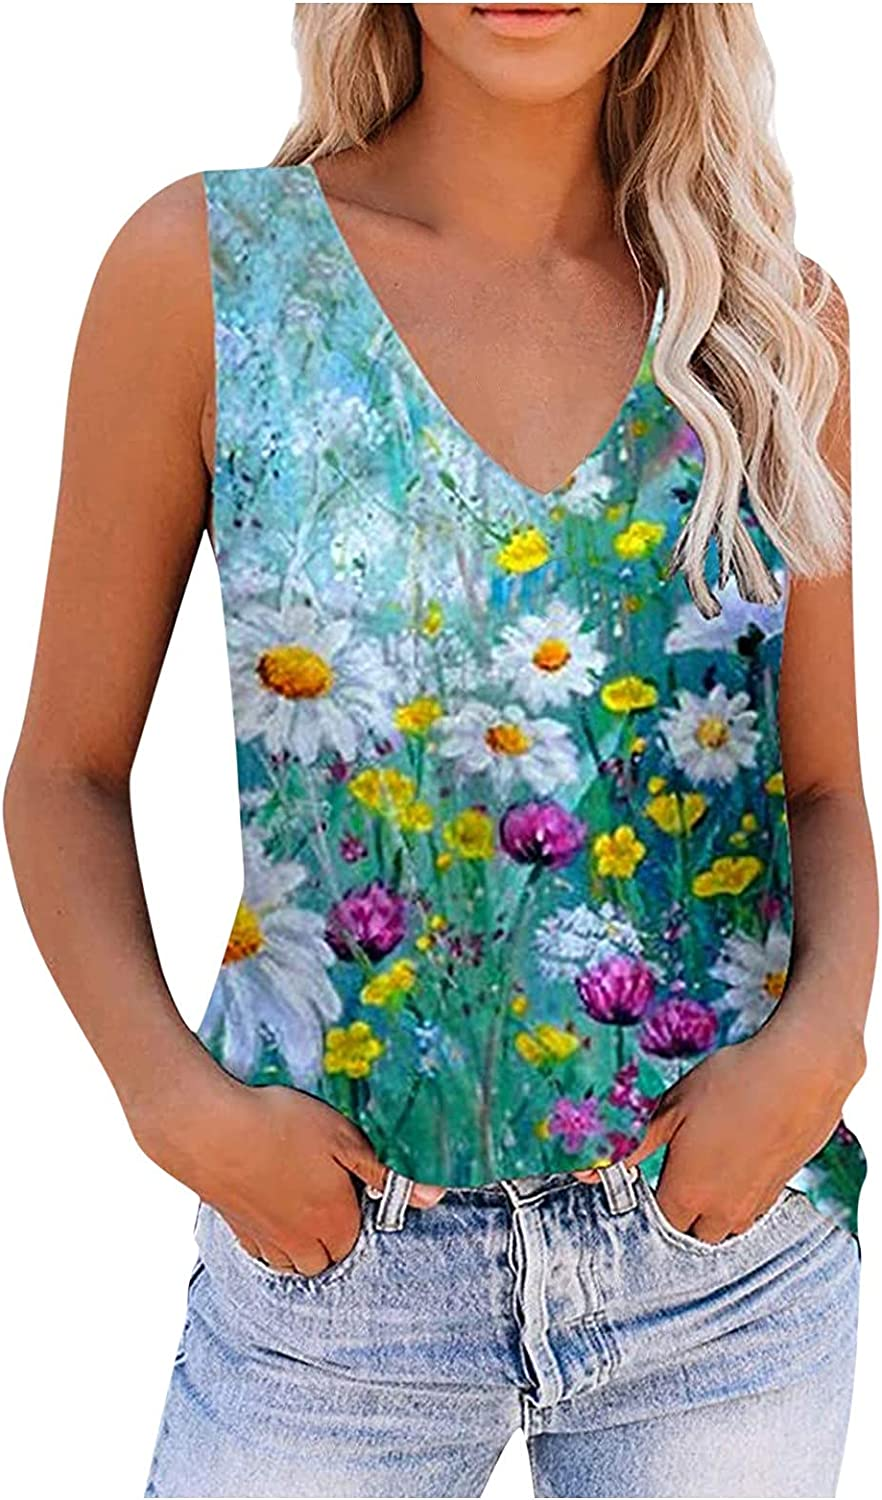 Womens Tops and Blouses, Women Casual Fashion Summer Print Sleeveless Vest Top Shirt Slim Blouses Tank Tops